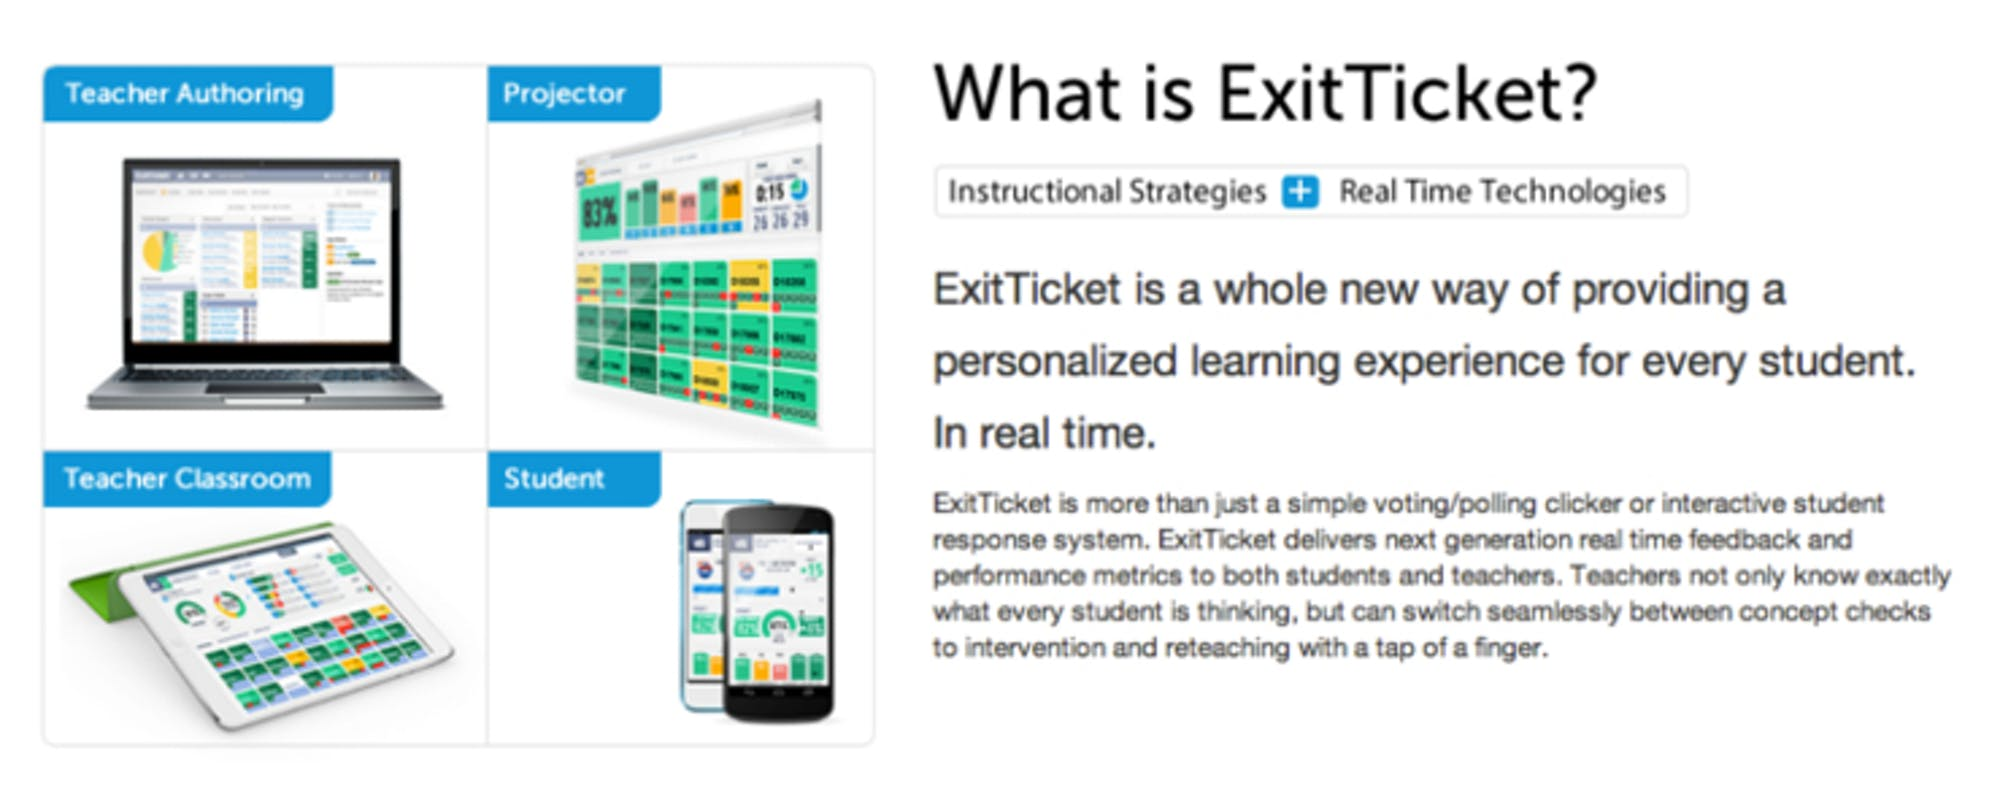 'ExitTicket' Checks on Student Learning